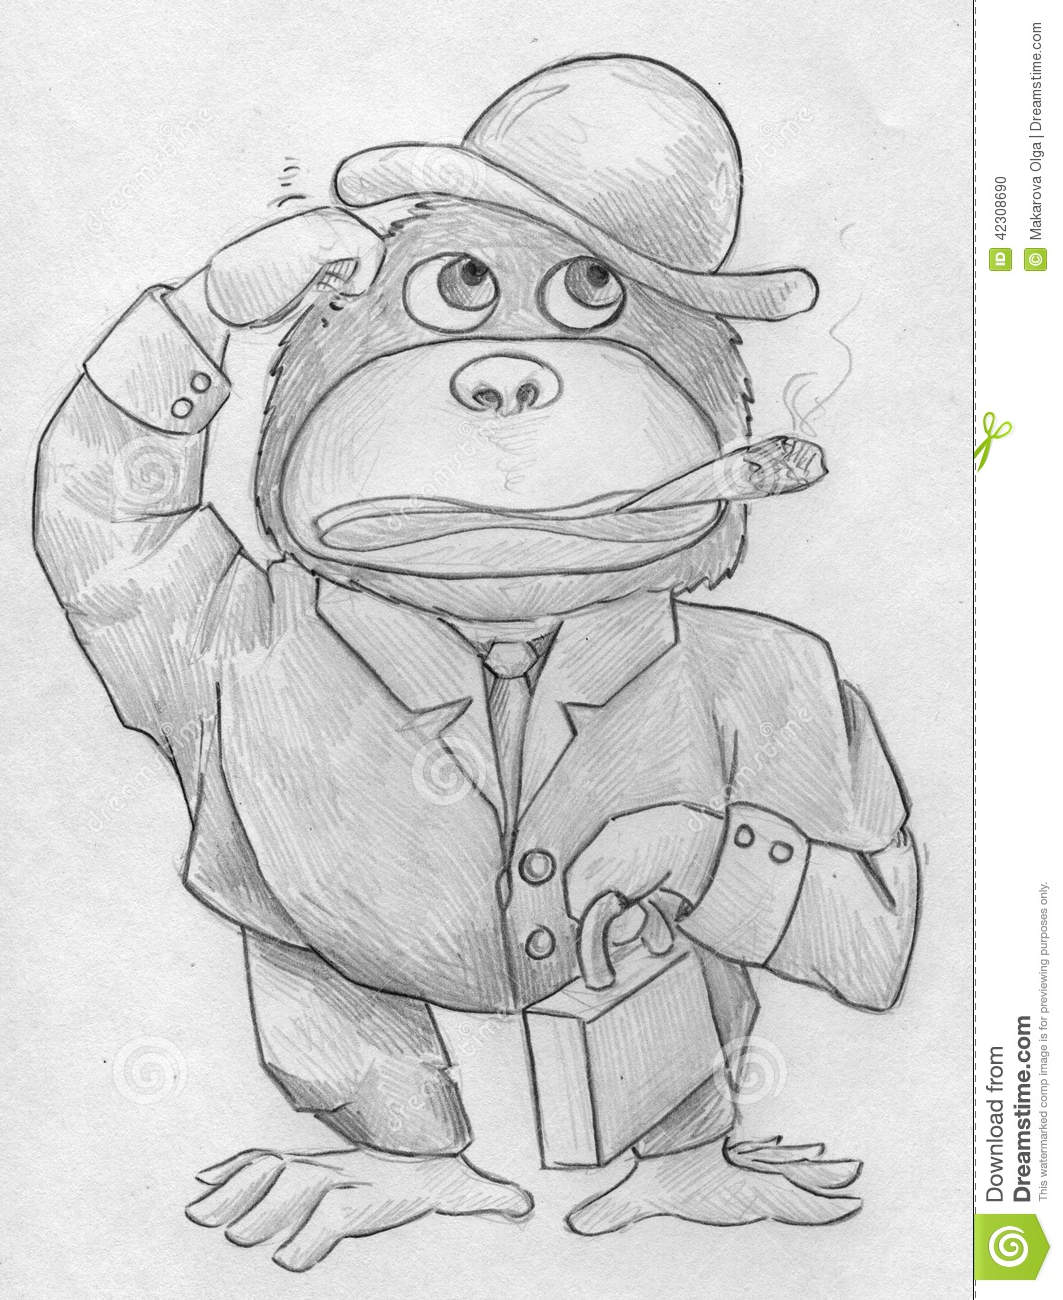 Hand drawn pencil sketch of a cartoonish gorilla wearing hat jacket and pants holding a little case in its left arm and smoking a cigar